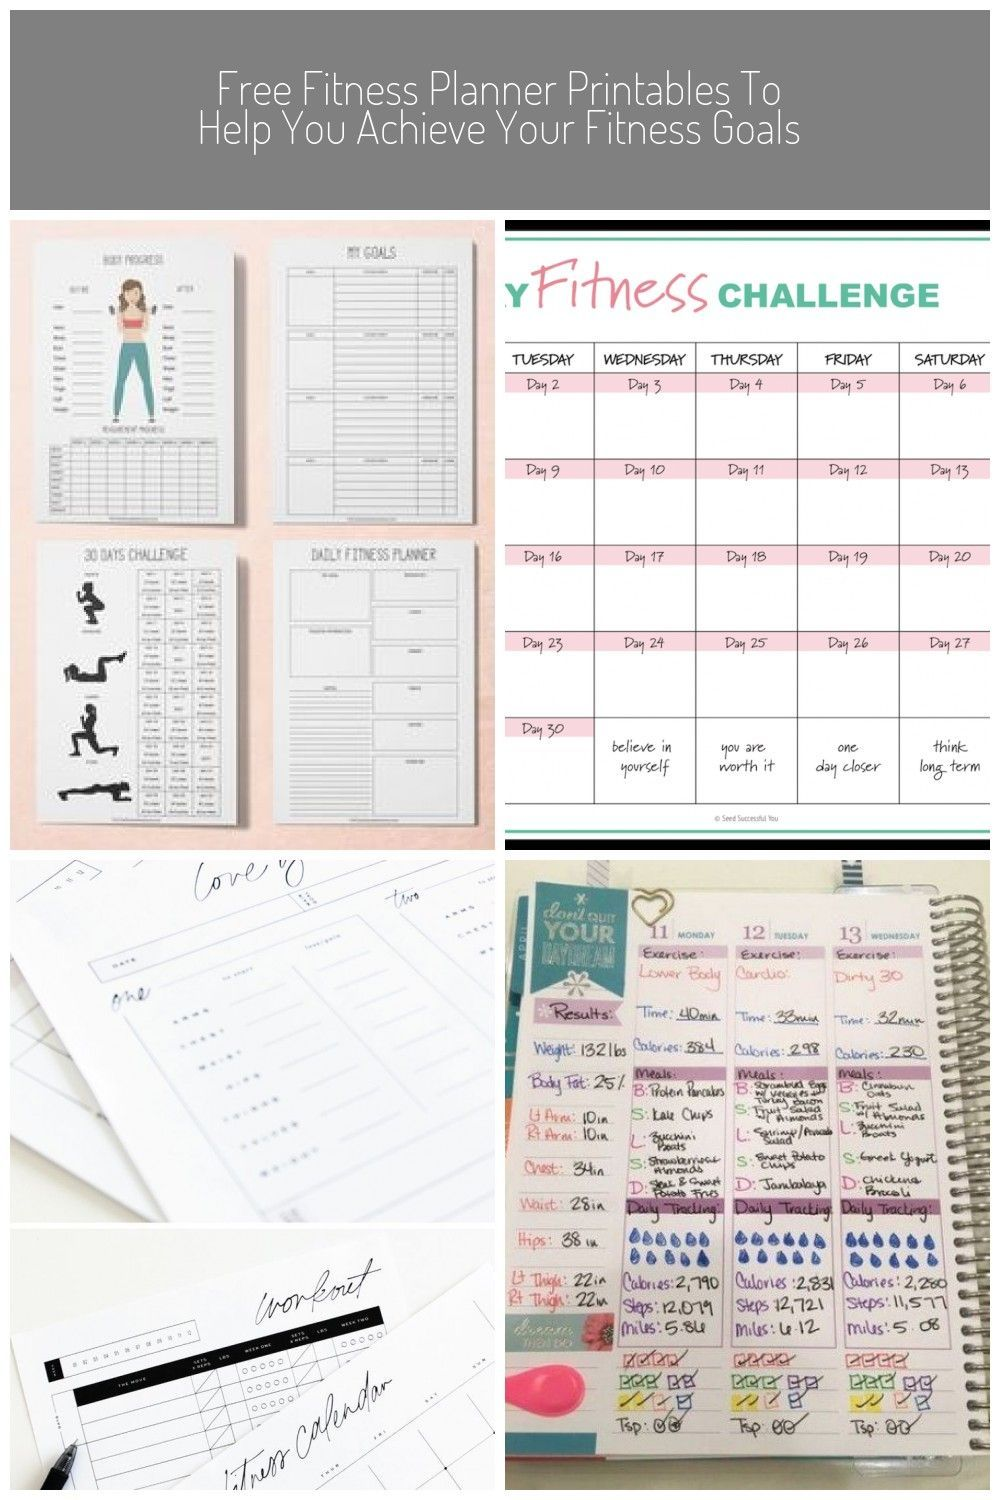 Fitness Planner Printable Workout Planner Printable Health | Etsy #fitness plann... -  Fitness Plann...